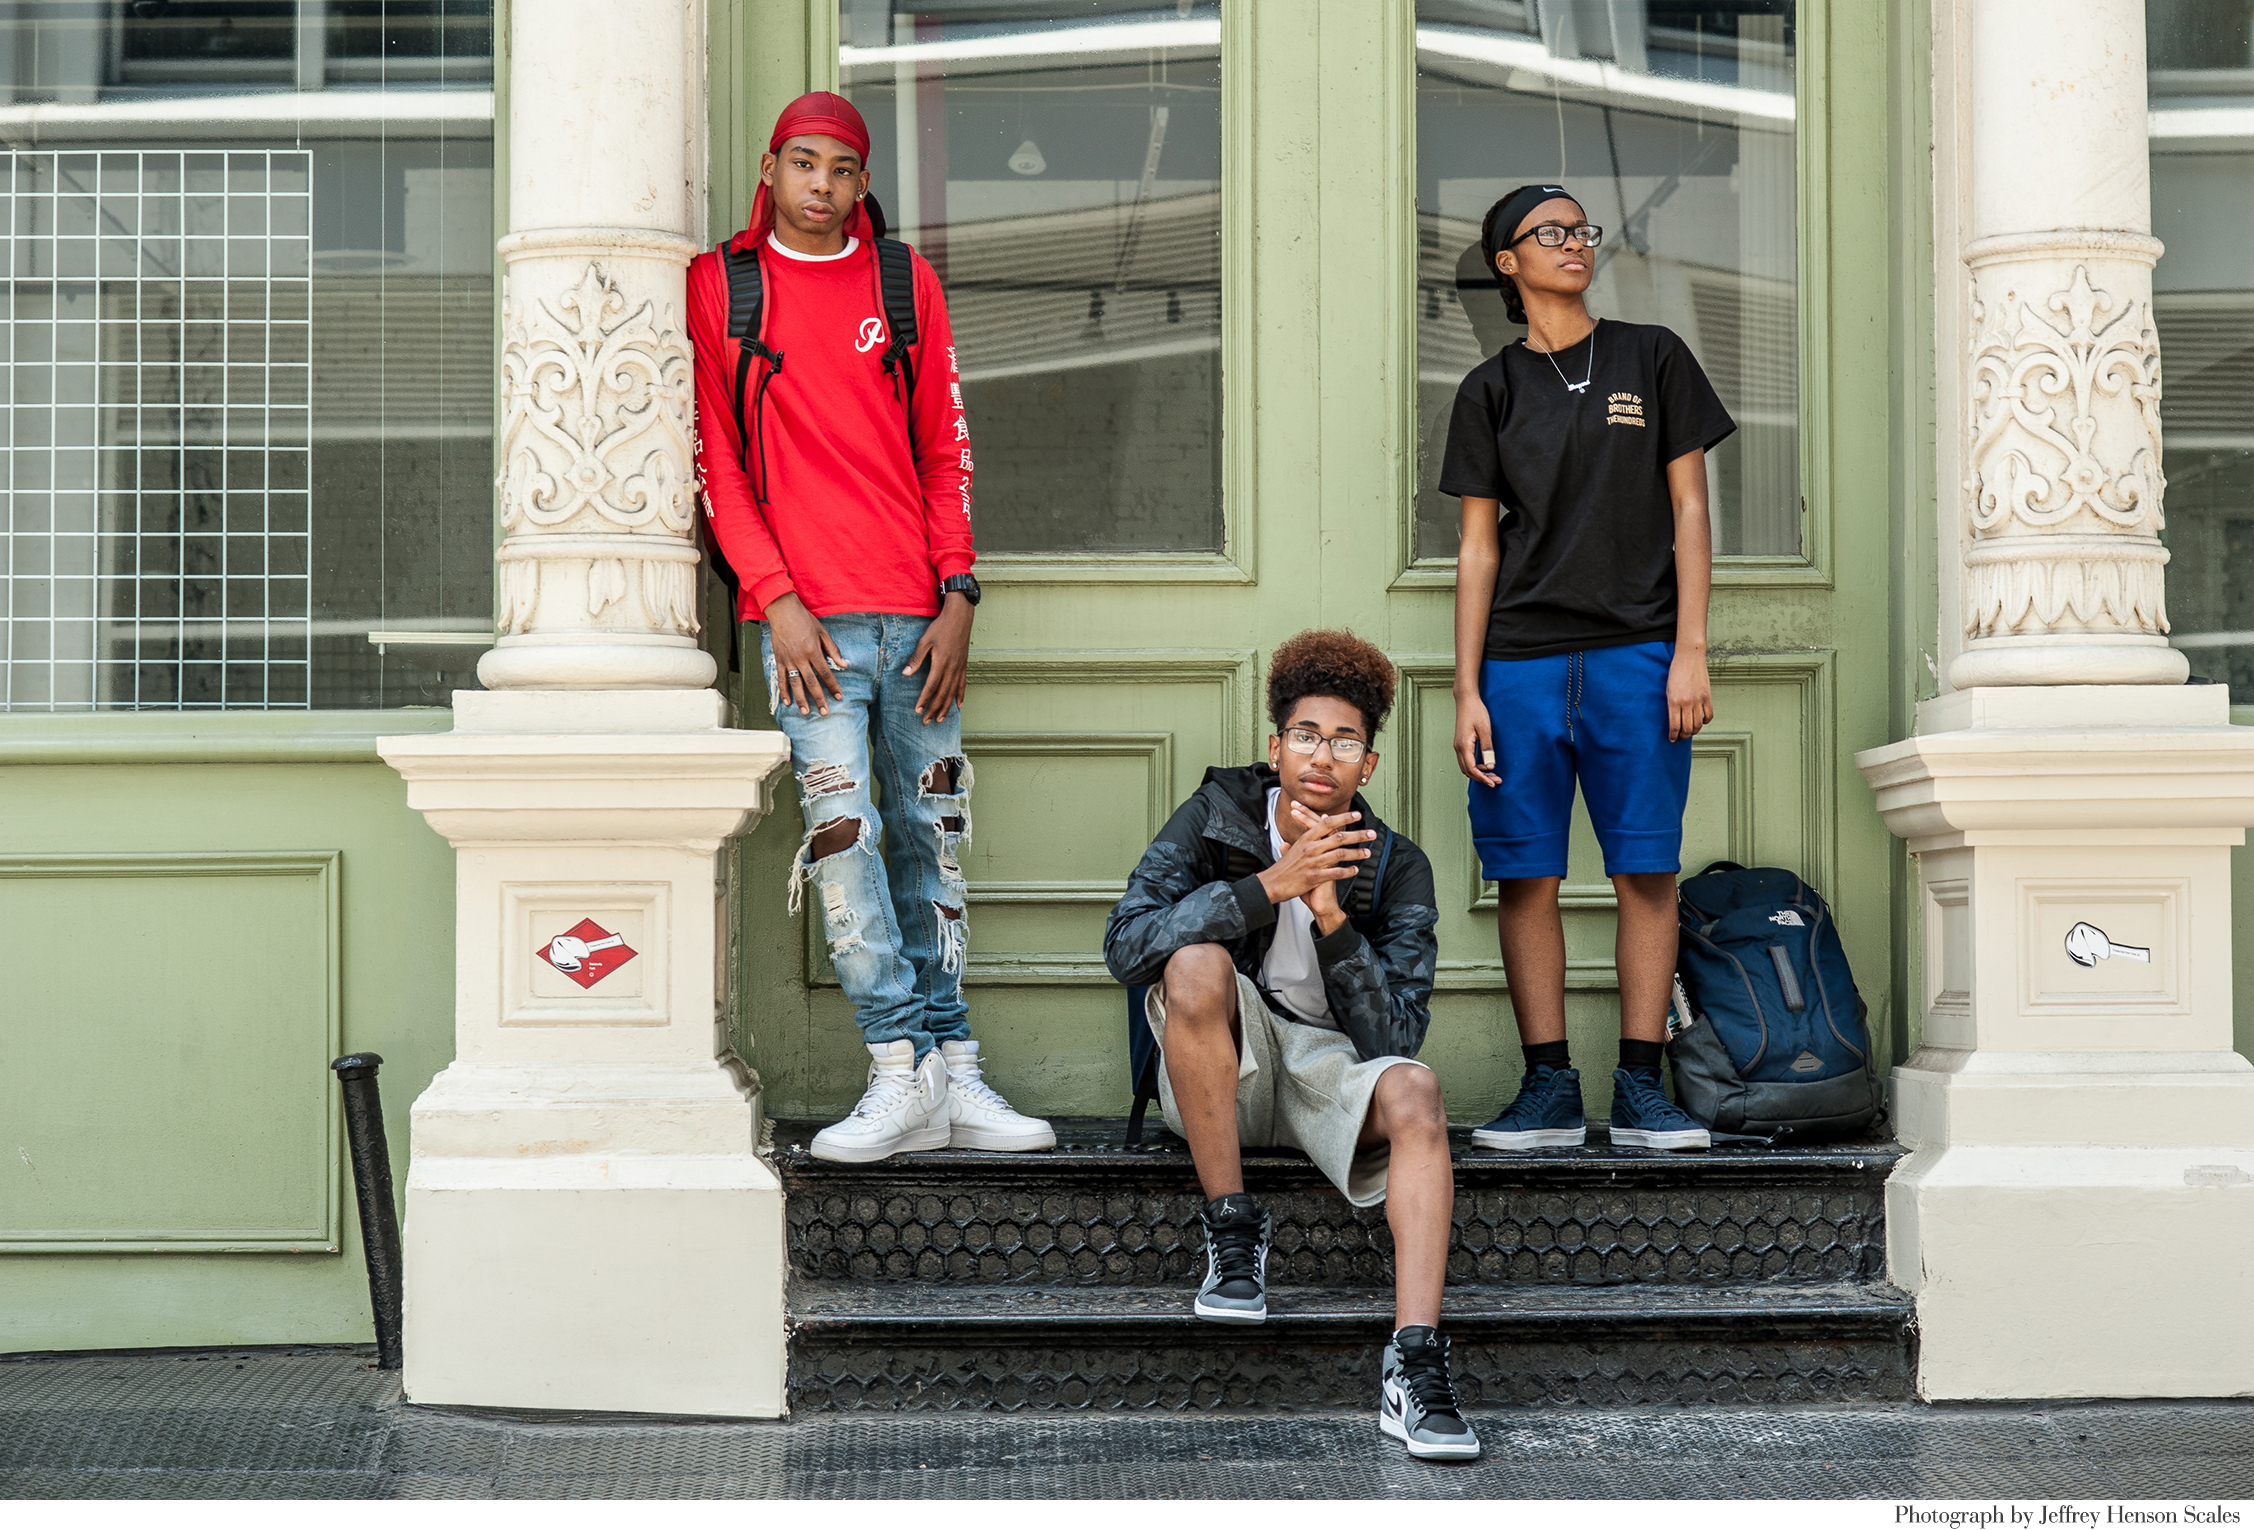 The Look _ New York Times_ Rebecca Pietri Stylist _ Casting _ Jeffery Henson Scale Photgrapher_Eve Lyon Editor_ New Geeks_Article_Nom Core- Youth Fashion_ Supreme_Palace_Vans_Street fashion _ Soho_ Teens_Group Shot .JPG